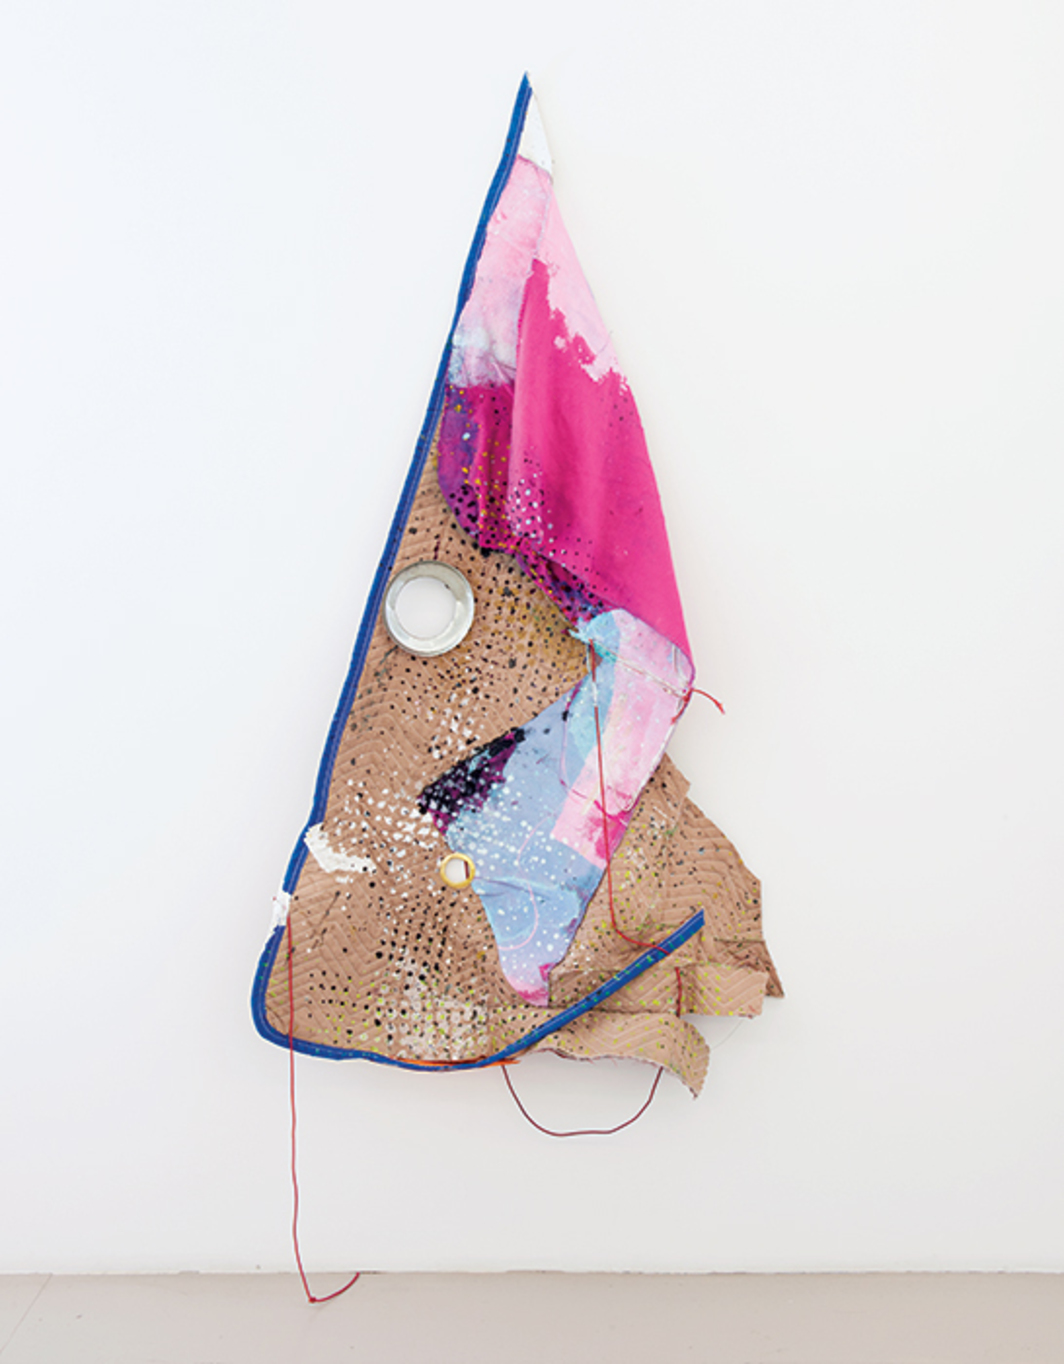 "Eric Mack, Avonte, 2015, acrylic on moving blanket and felt blanket, elastic rope, metal grommets, 81 × 72 × 7"". Installation view, Company Gallery, New York."